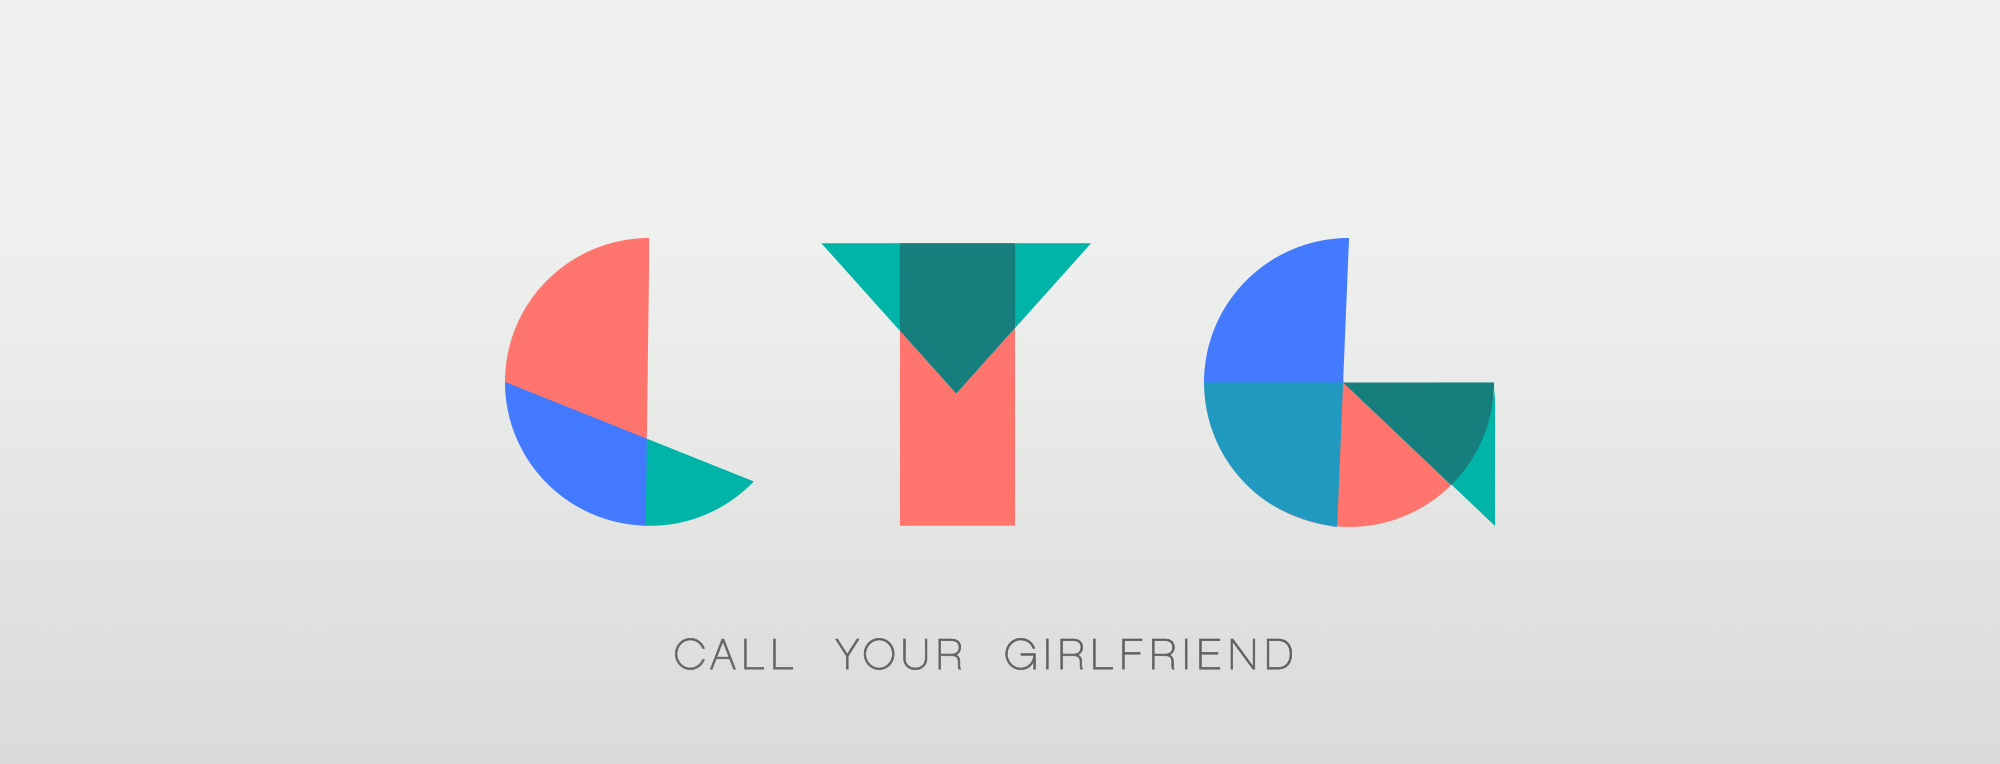 callyourgf